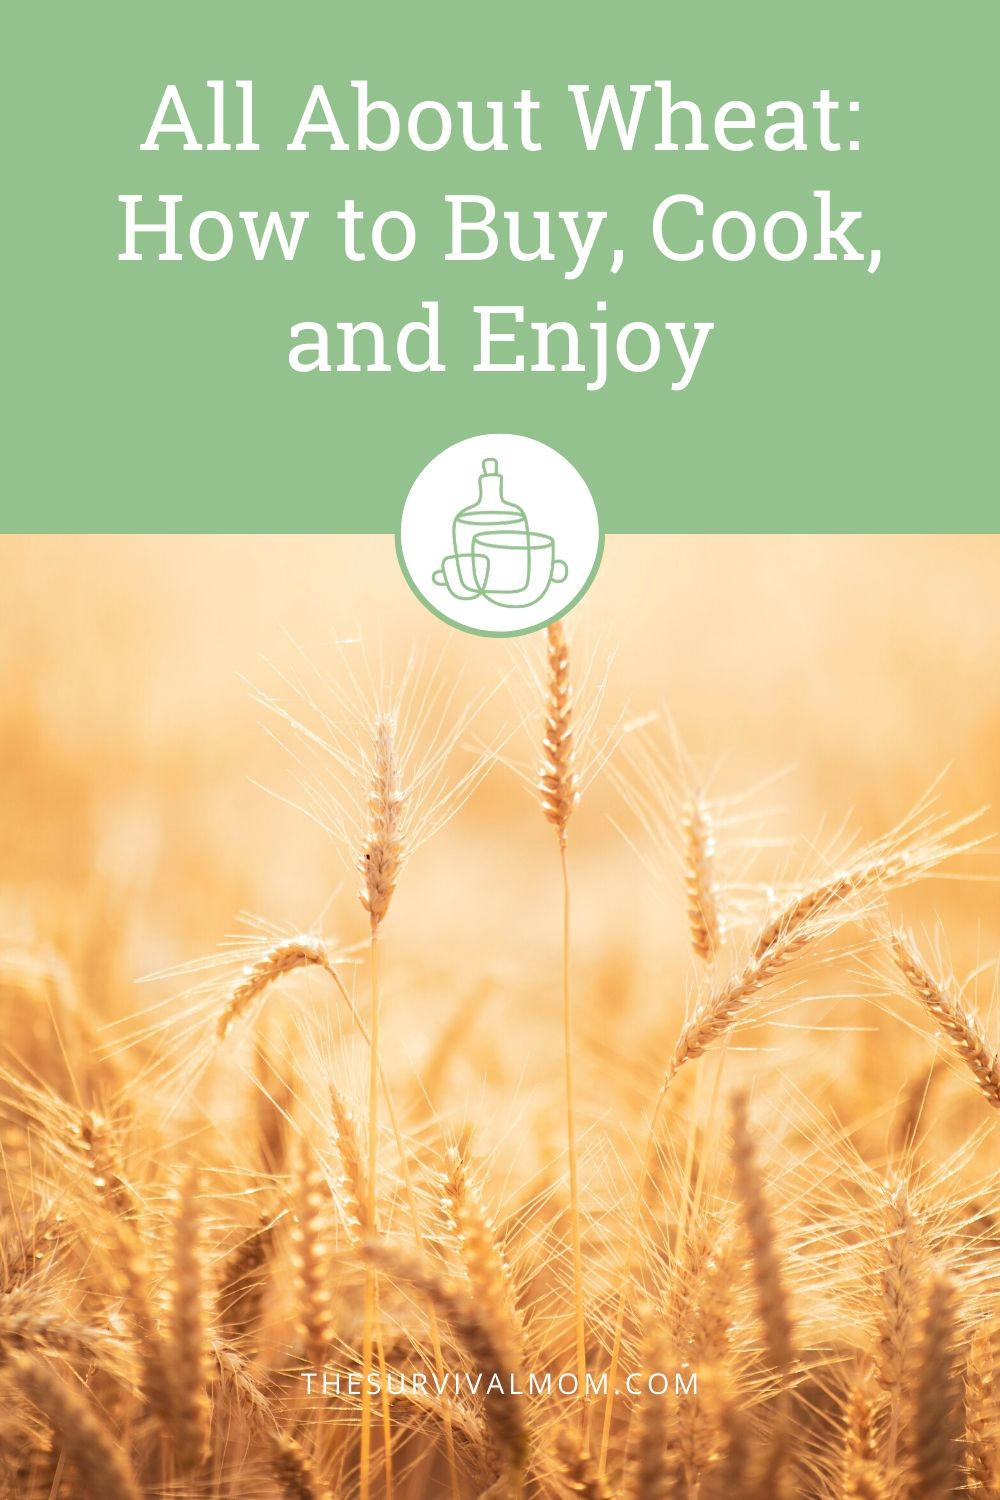 All About Wheat: How to Buy, Cook, and Enjoy via The Survival Mom